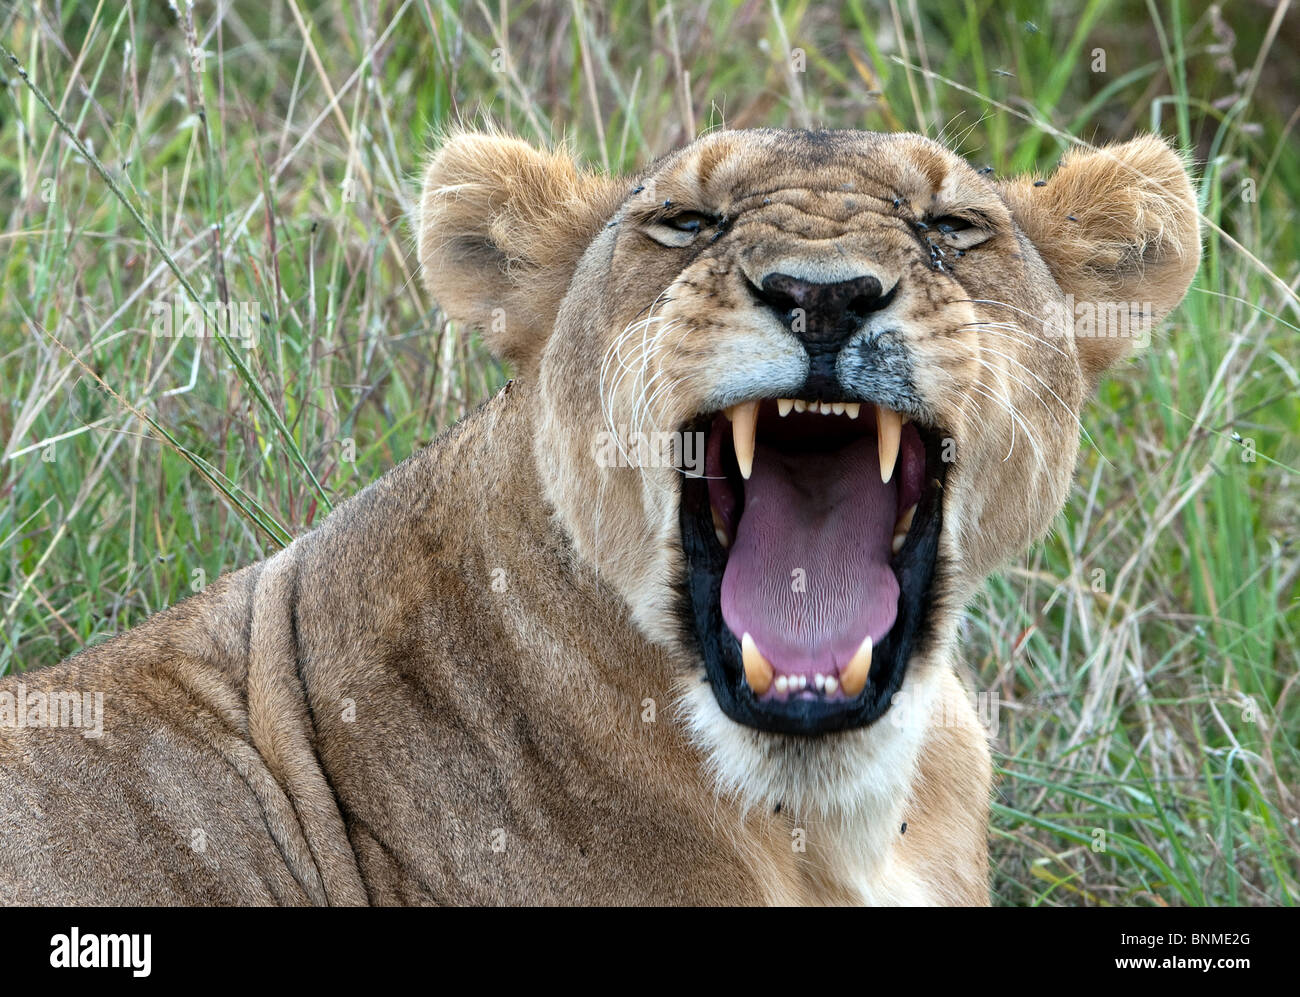 Snarling lioness Lioness (Panthera leo nubica) in the Masai Mara National Reserve, Kenya in the Masai Mara - Stock Image